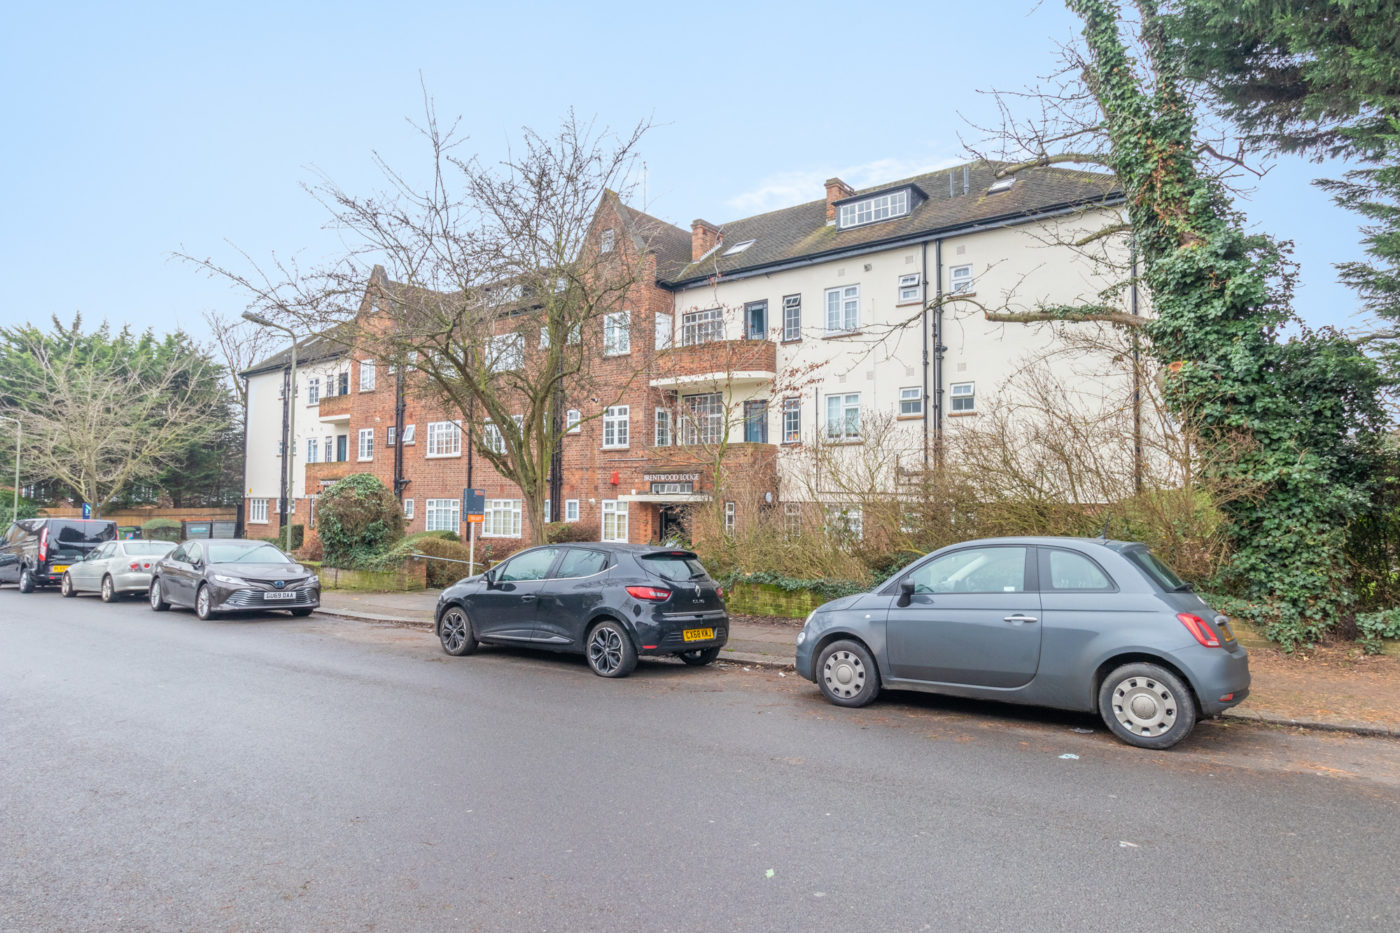 Brentwood lodge, Hendon, NW4